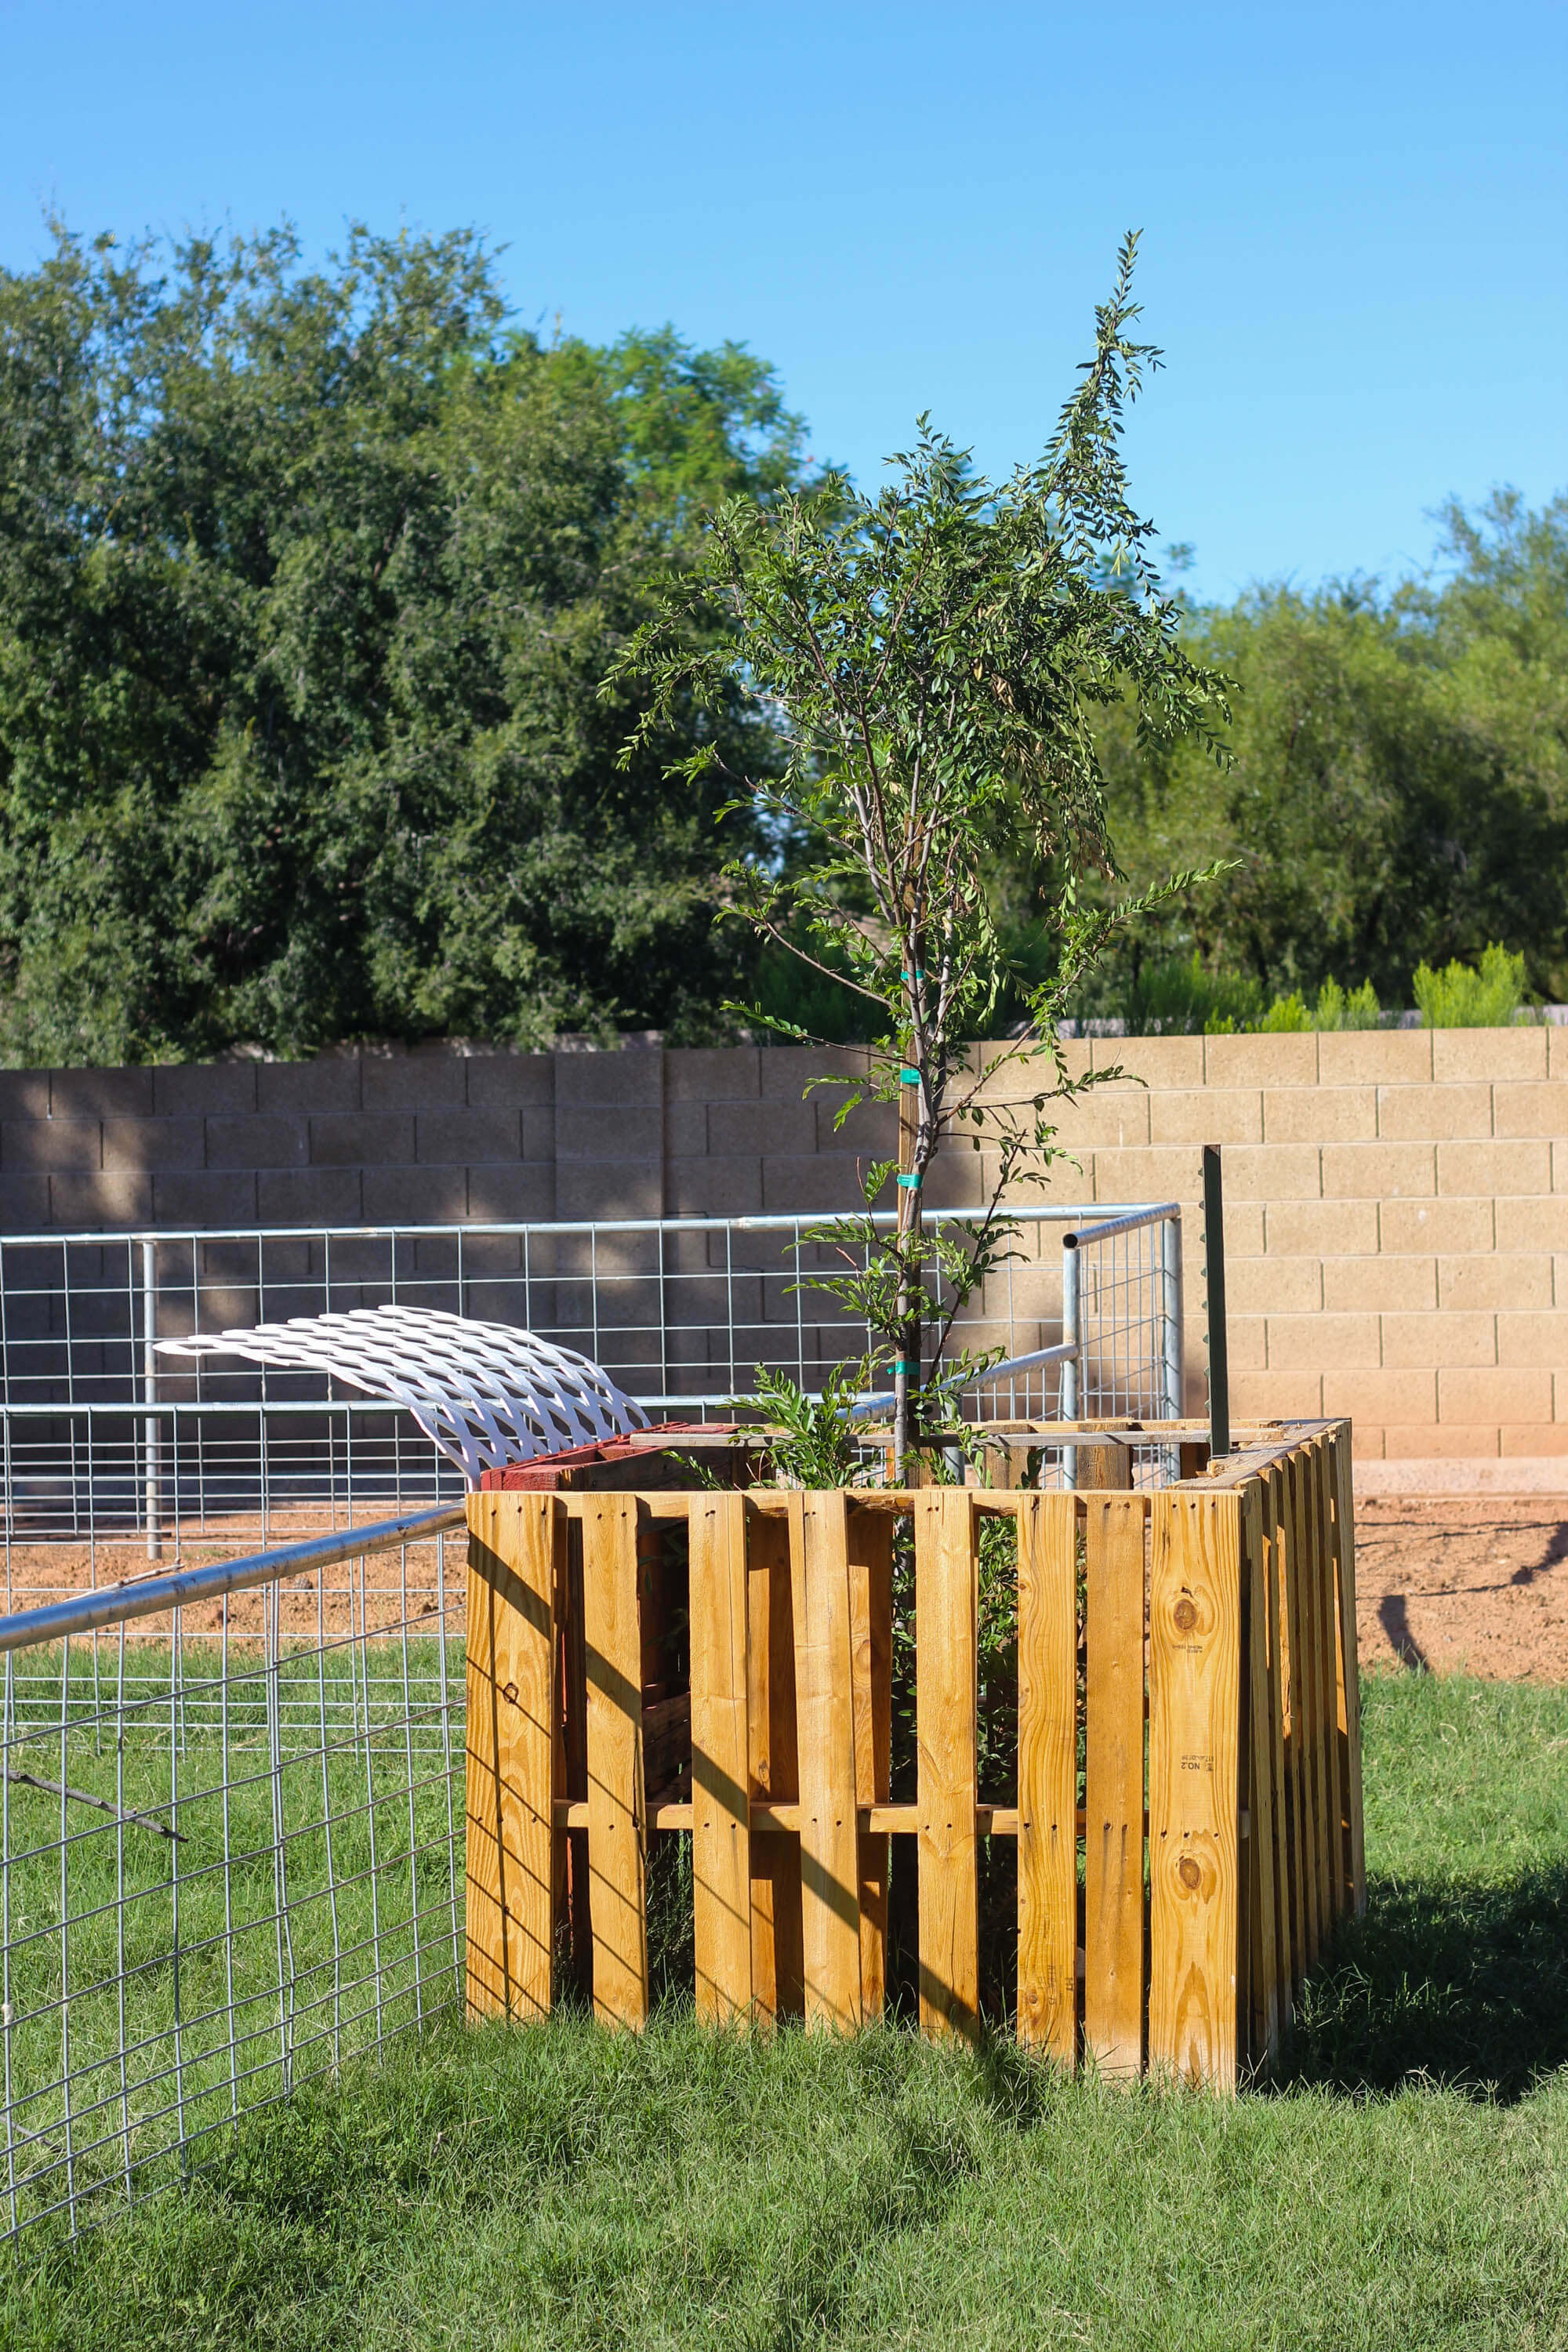 Building a goat pen - Trees for a Shade Source